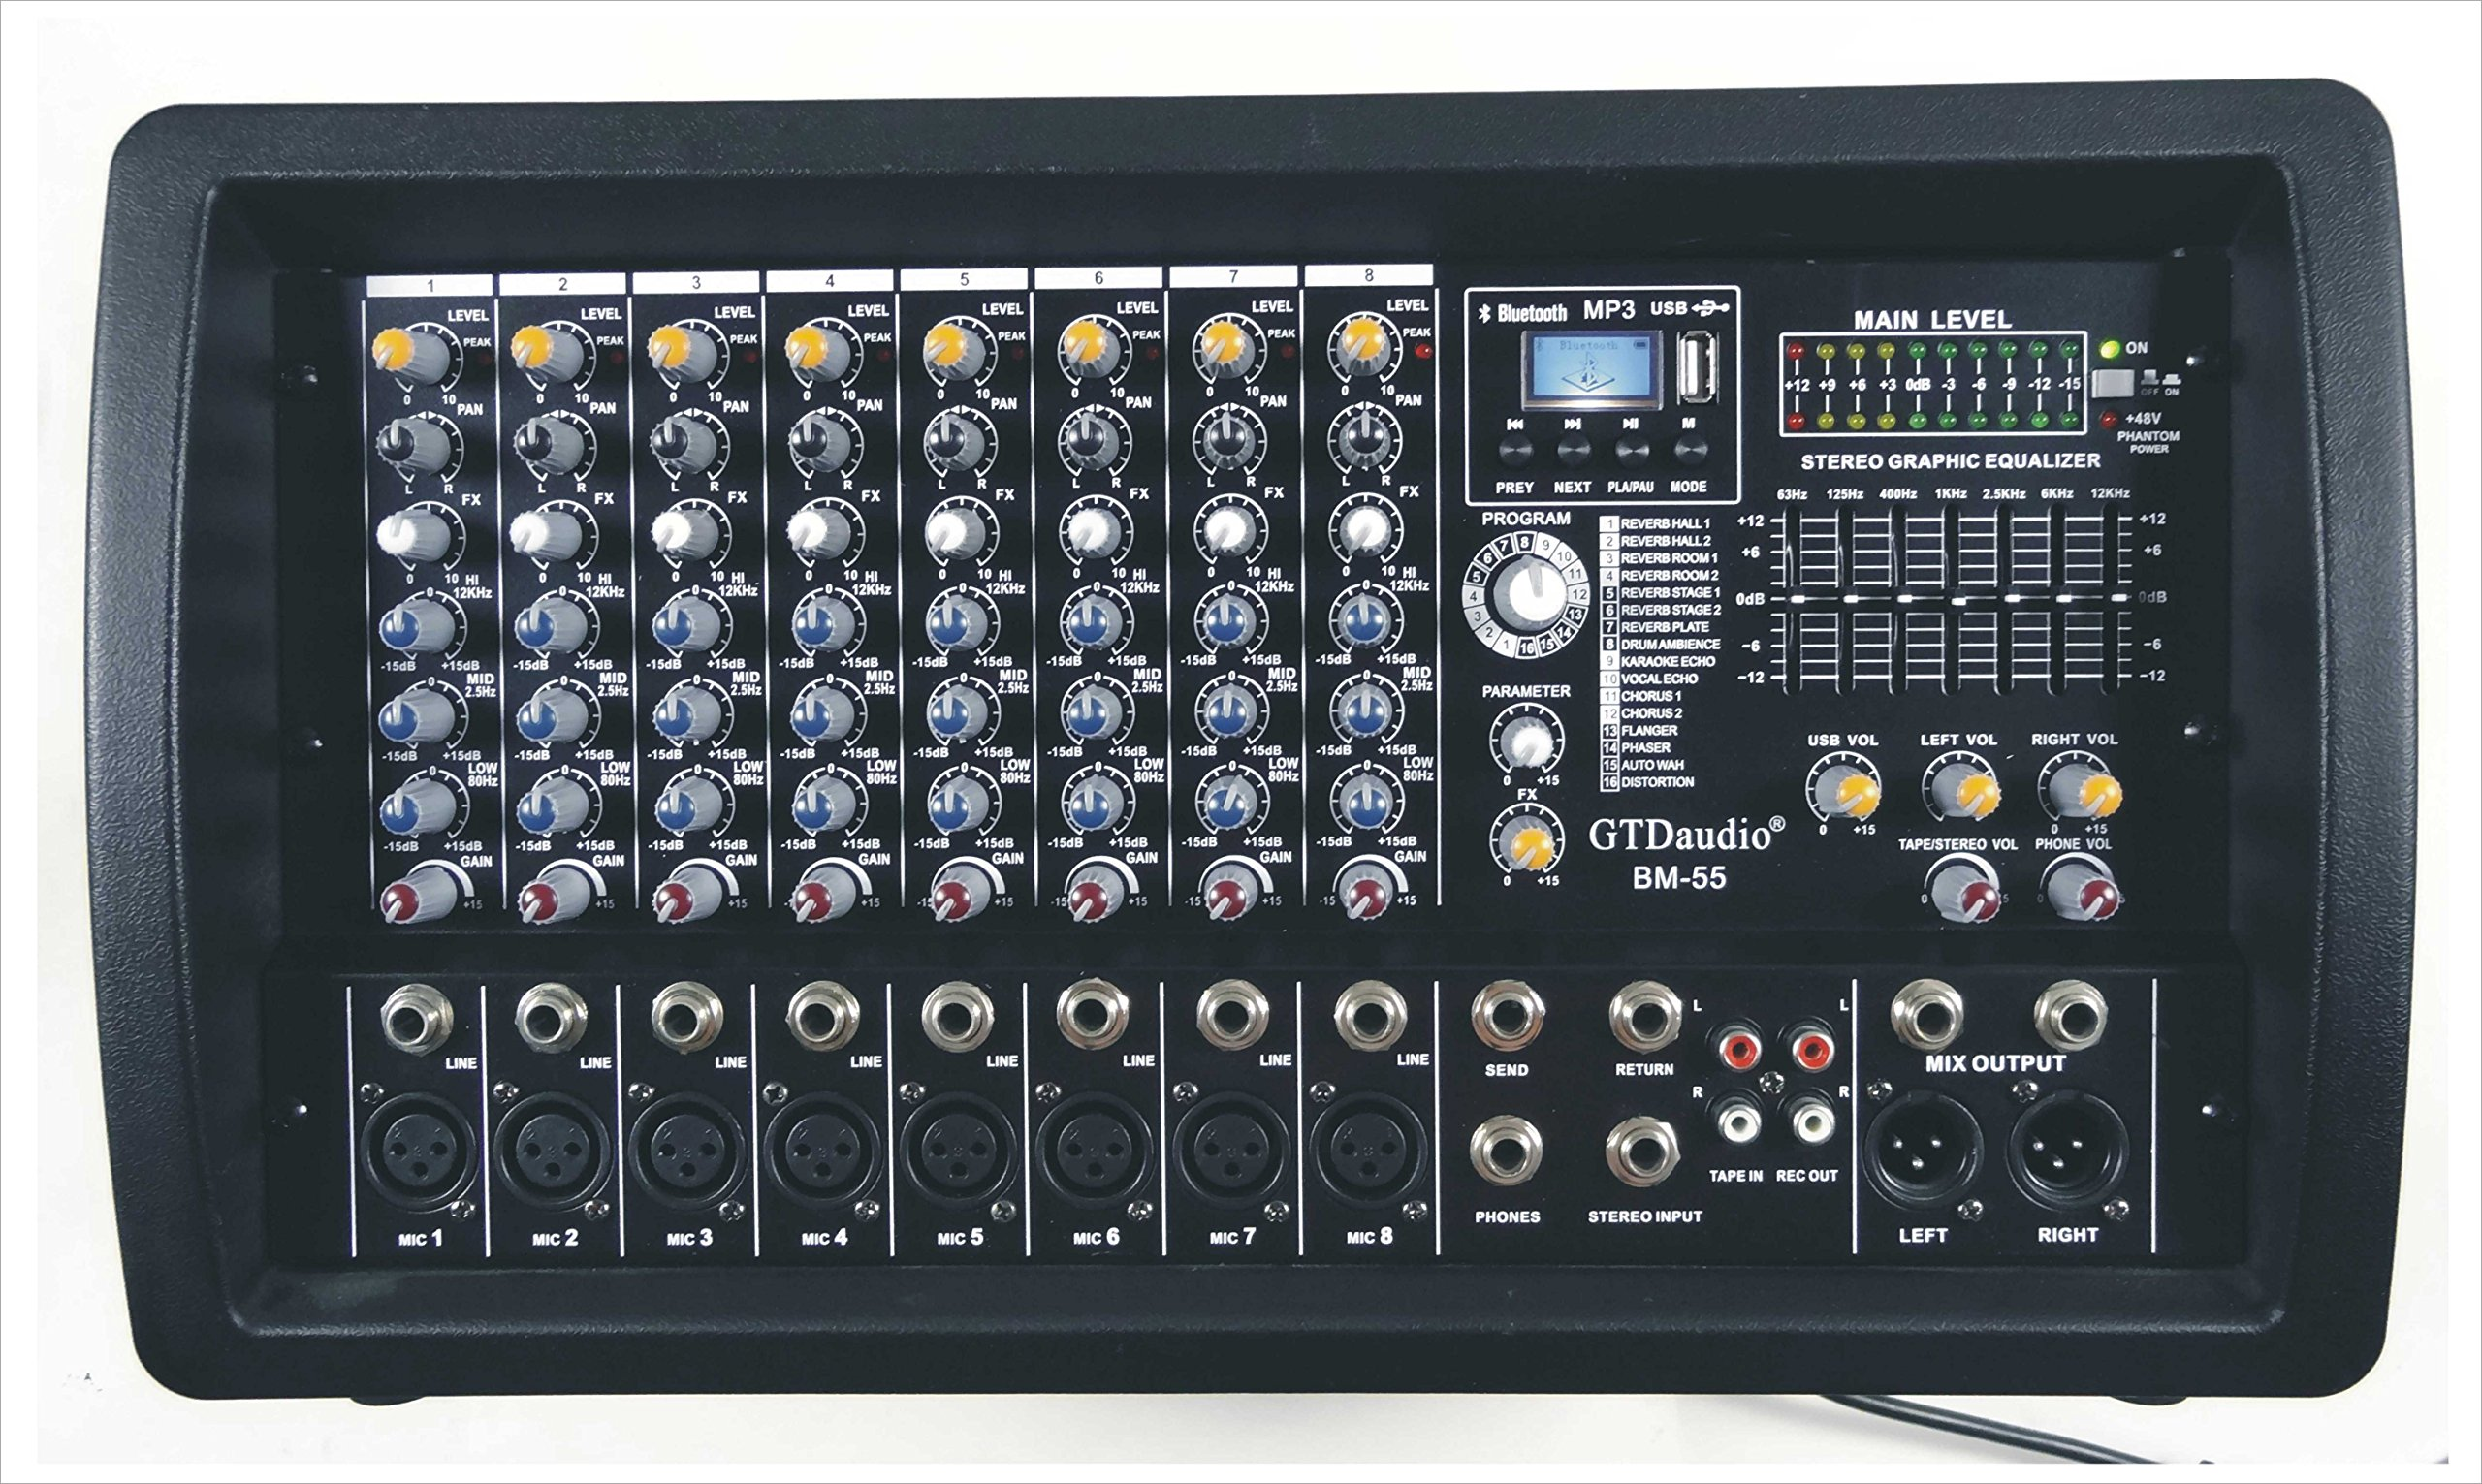 GTD-Audio 8 Channel 4000Watt Professional Powered Mixer Amplifier (1000 Watt RMS )